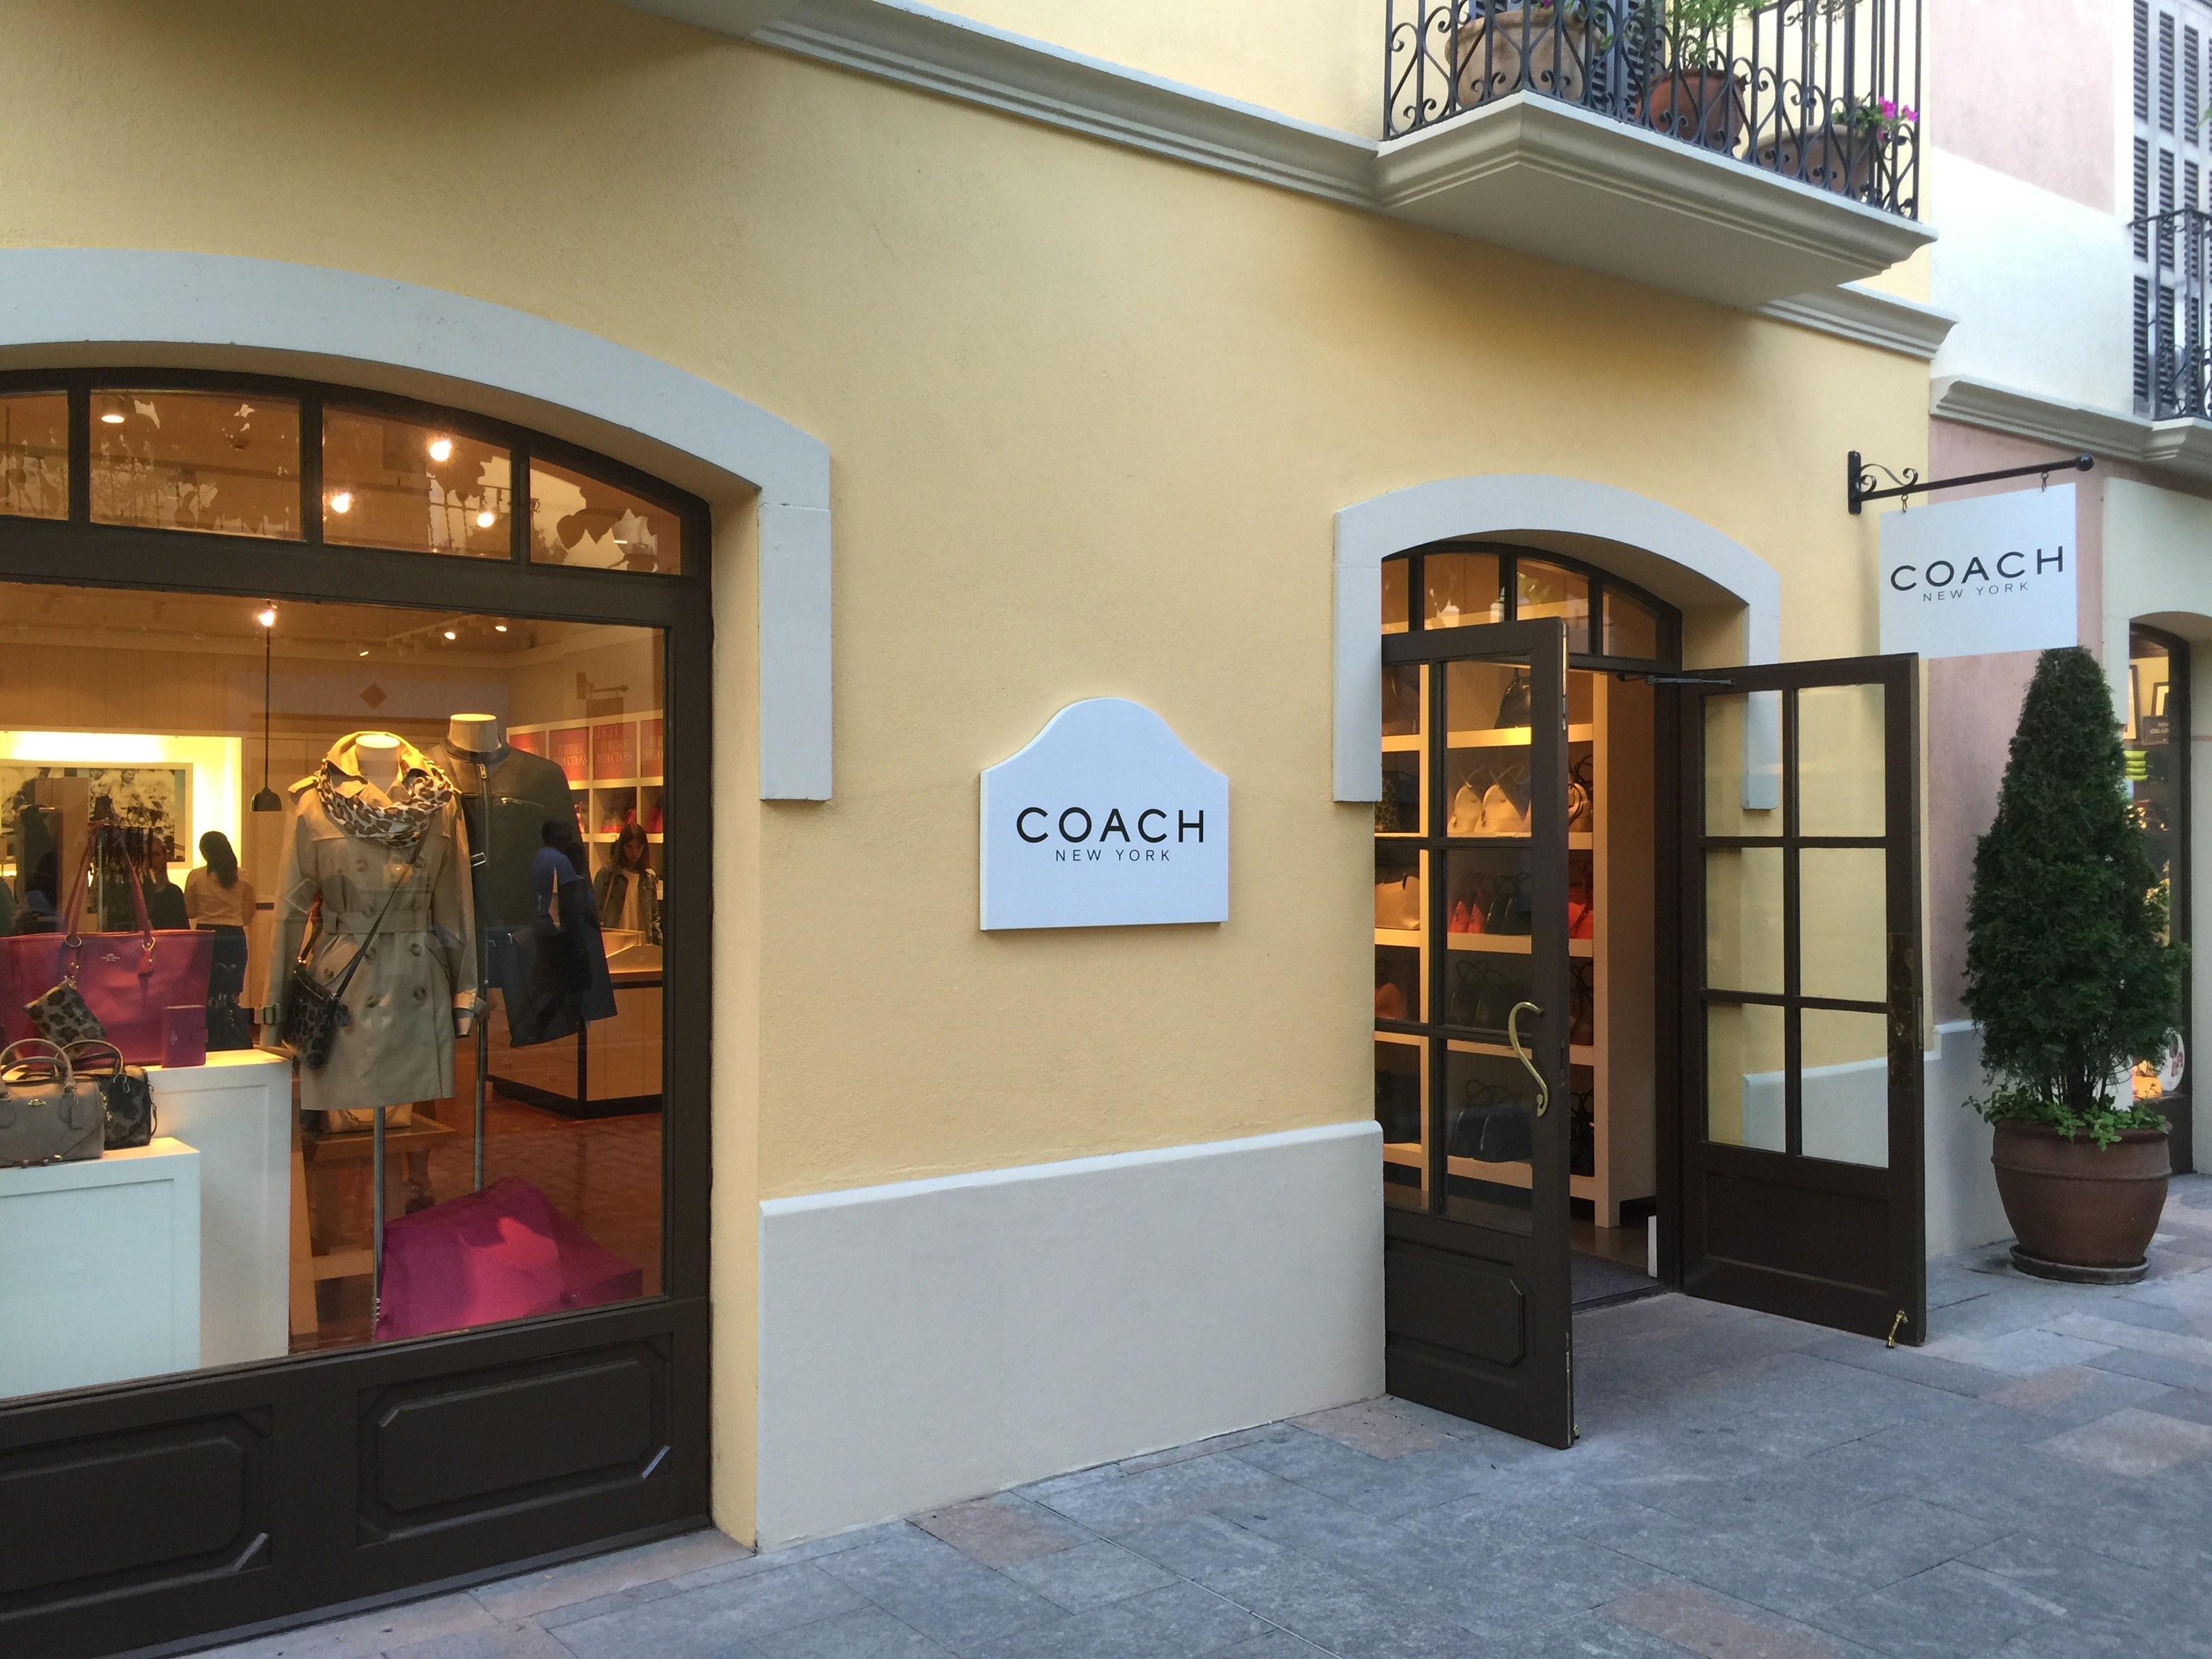 couch outlet store 7ky6  Even if August is still a month of sales in Spain, Coach outlet in  Barcelona surroundings did not impress much in terms of sales